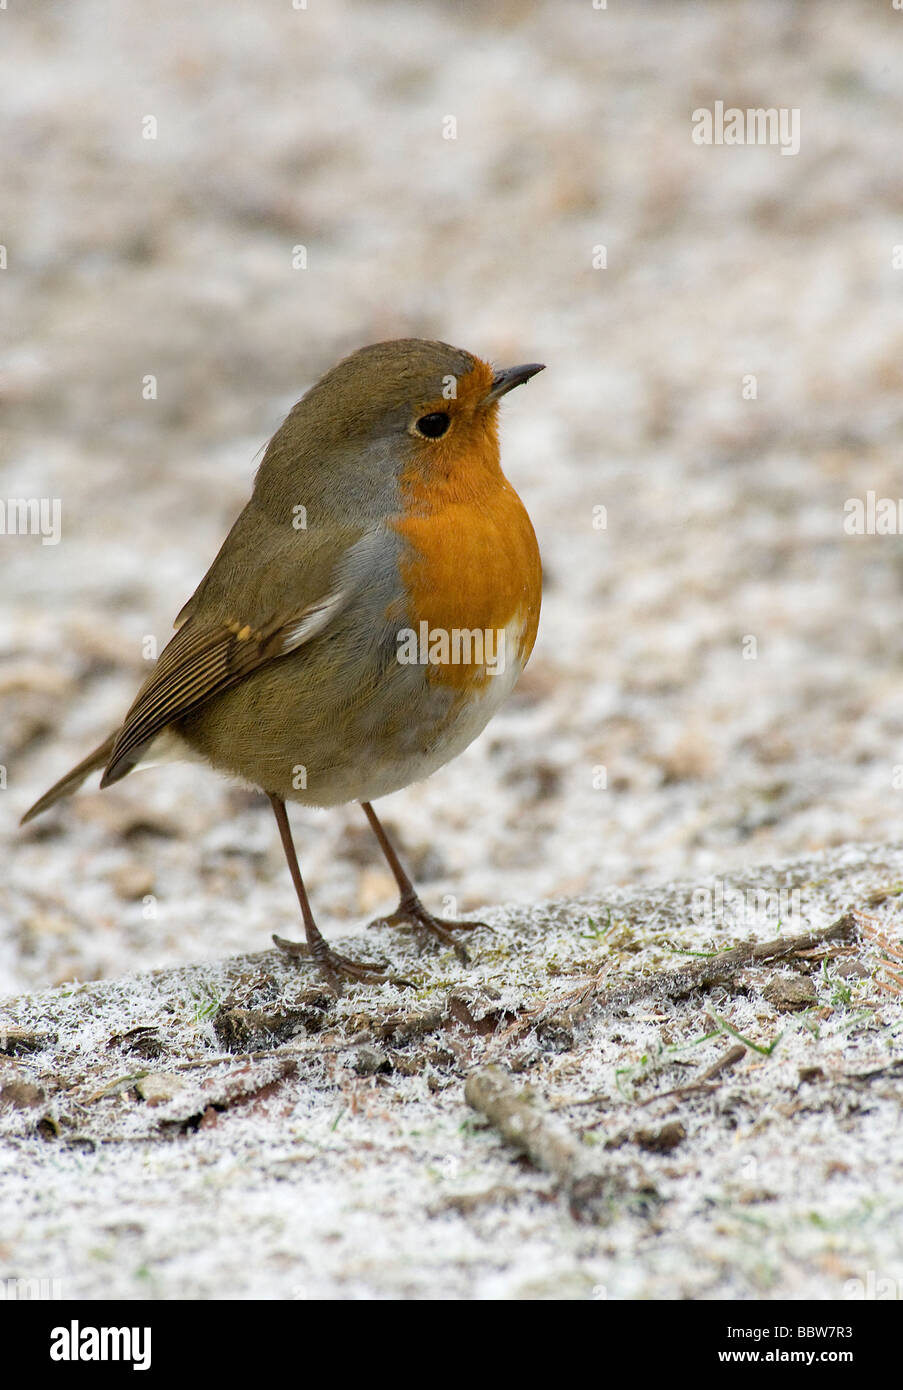 European robin Erithacus rubecula fluffed up on snow covered ground - Stock Image